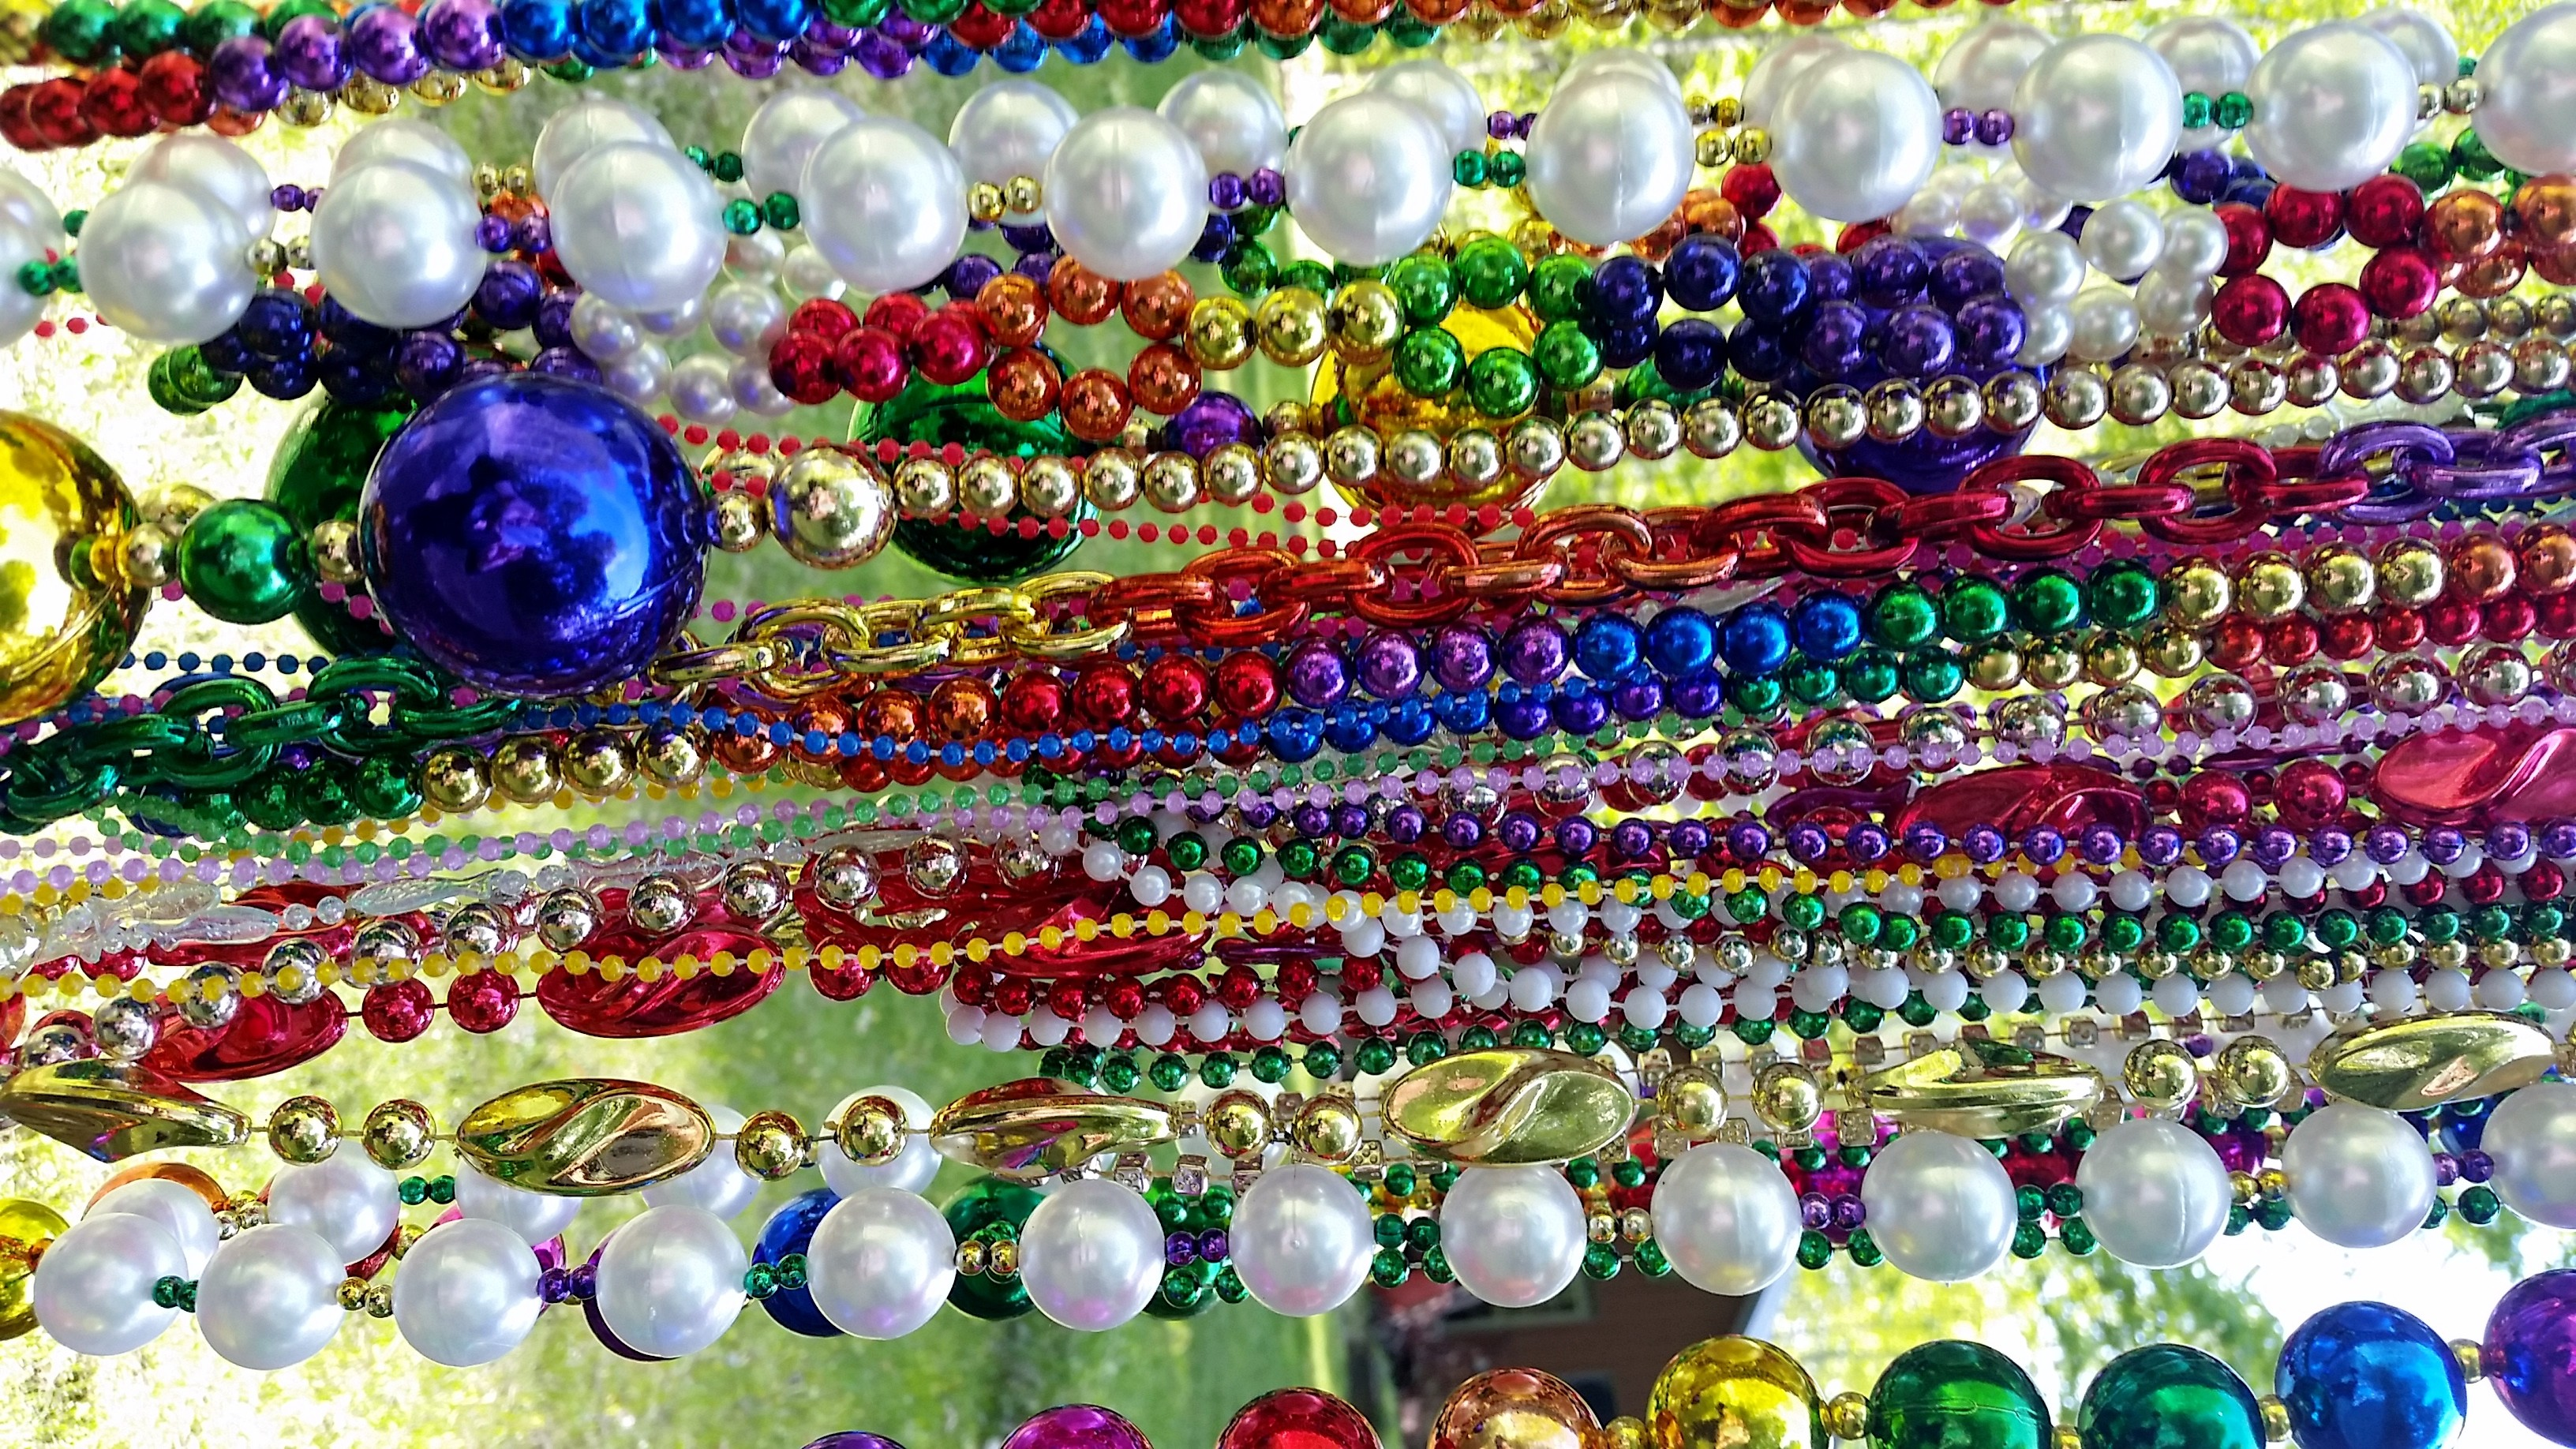 beads mardi image gras no standing paradegoers get orleans carnival entertainment creative bridge bead water problem with article new life